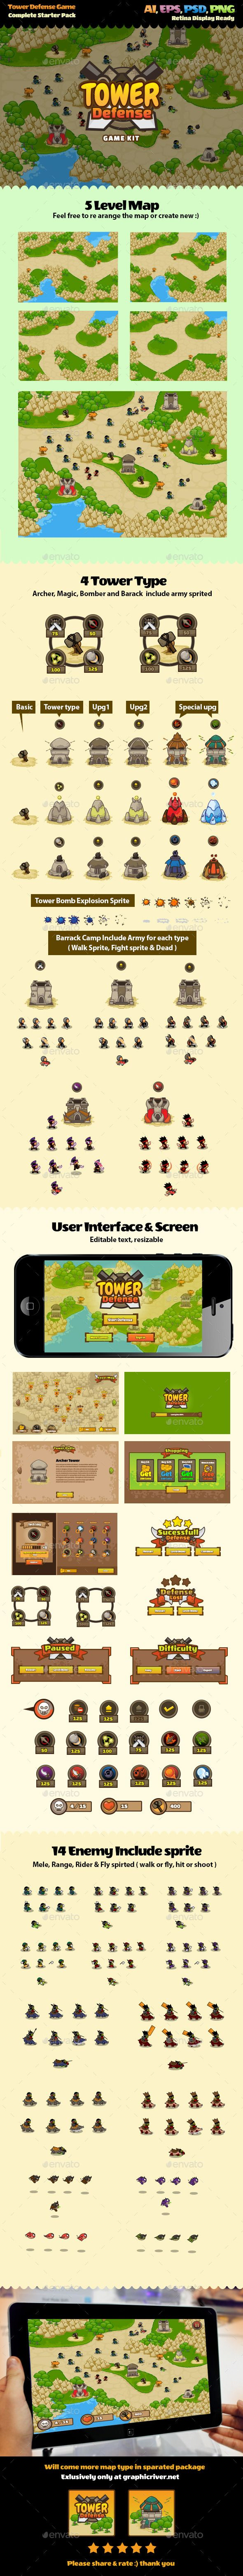 Tower Defense Game Kit — Photoshop PSD #mobile td #tower defense • Available here → https://graphicriver.net/item/tower-defense-game-kit/11707129?ref=pxcr